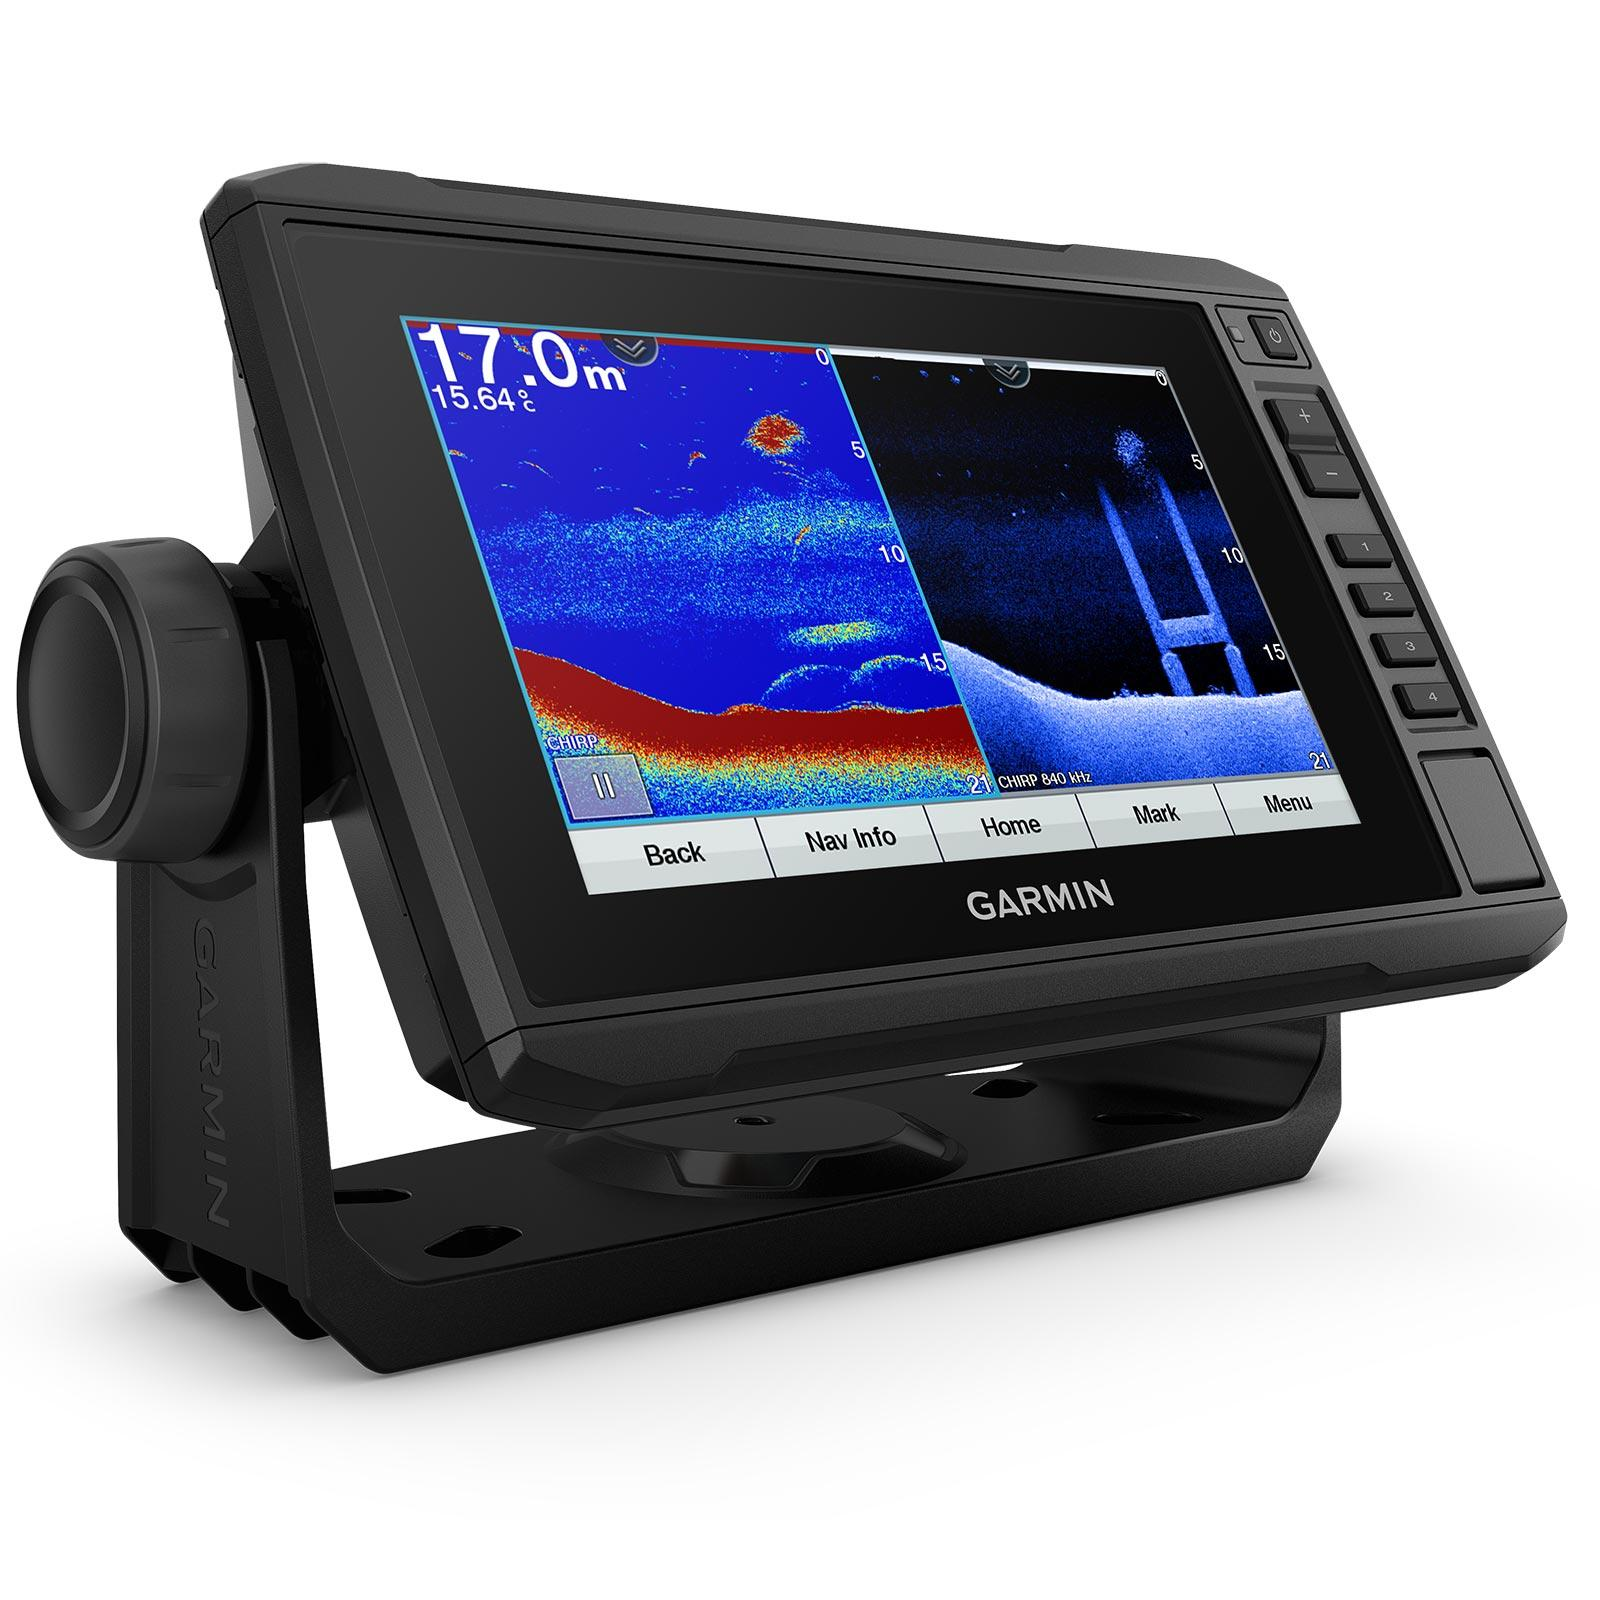 Garmin ECHOMAP UHD 72cv without Transducer